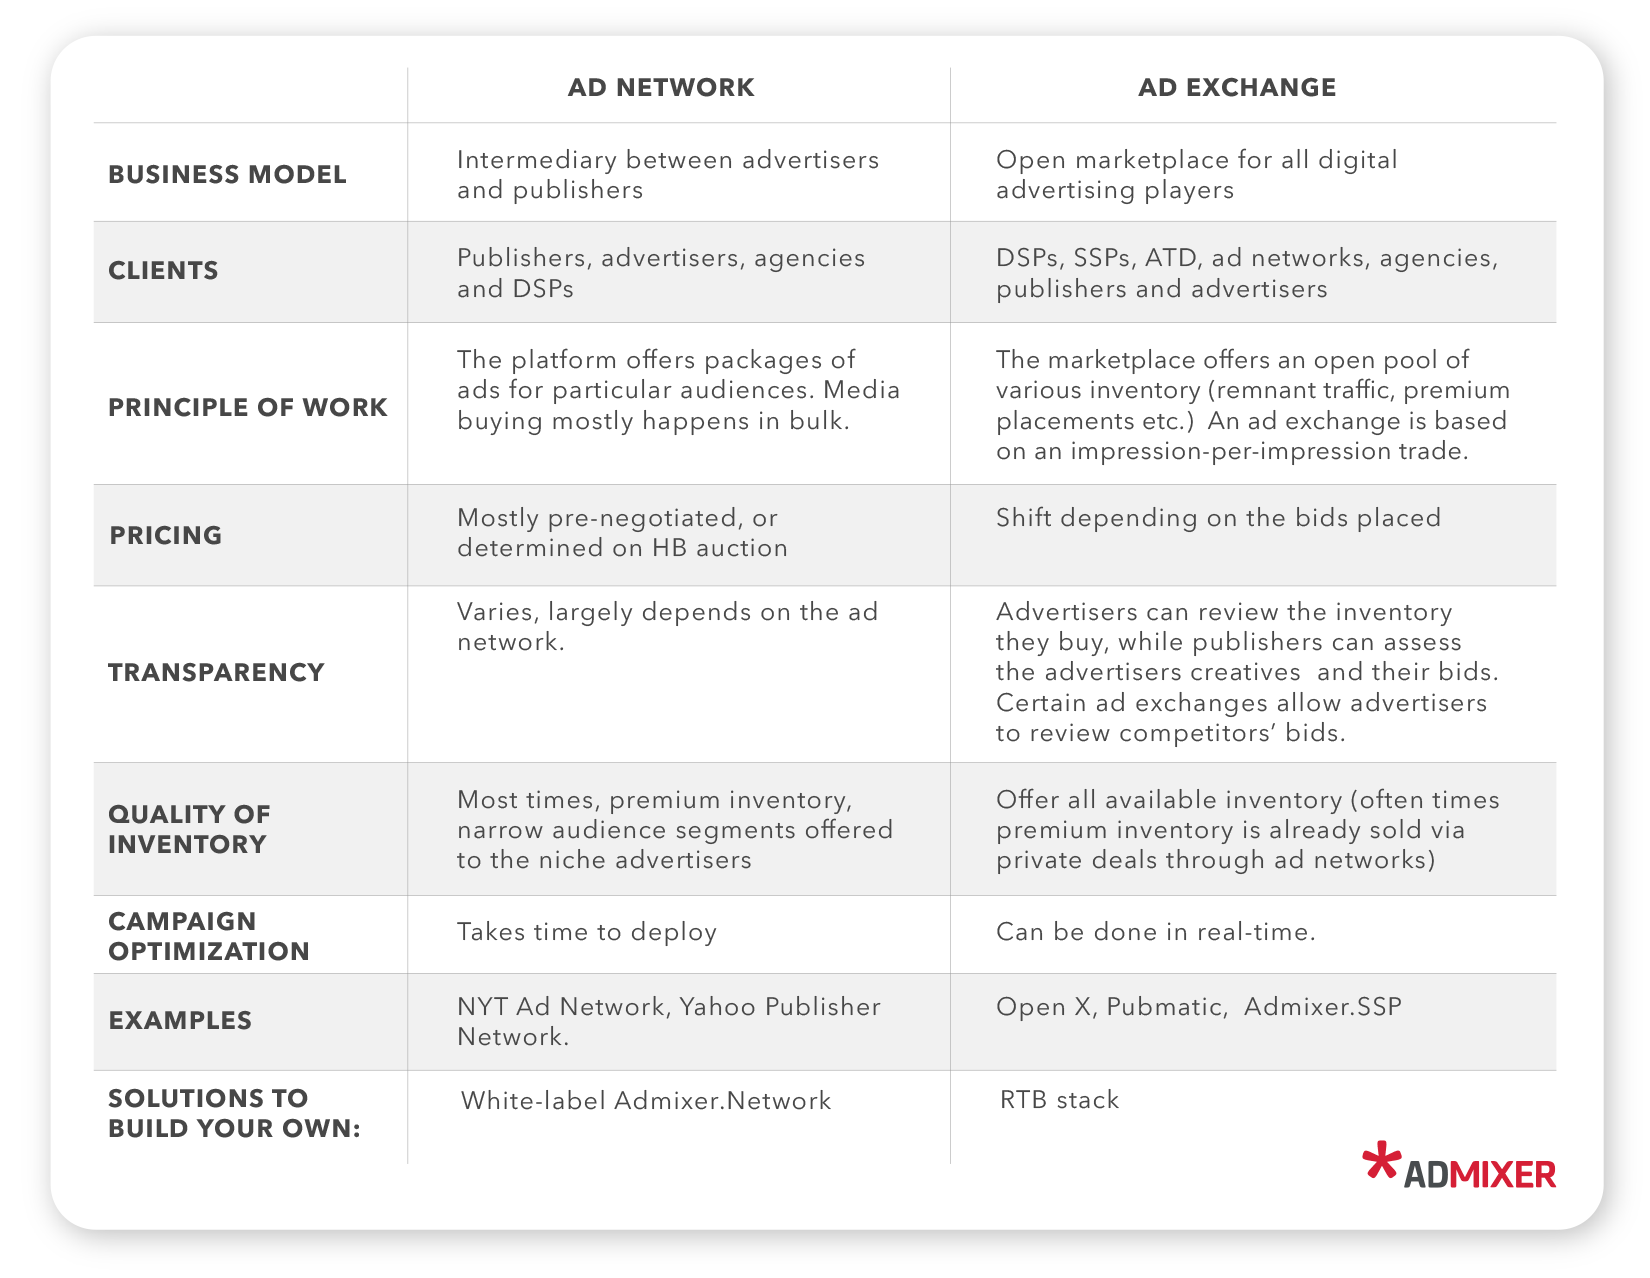 Ad exchange vs. Ad network key differences- Admixer.blog